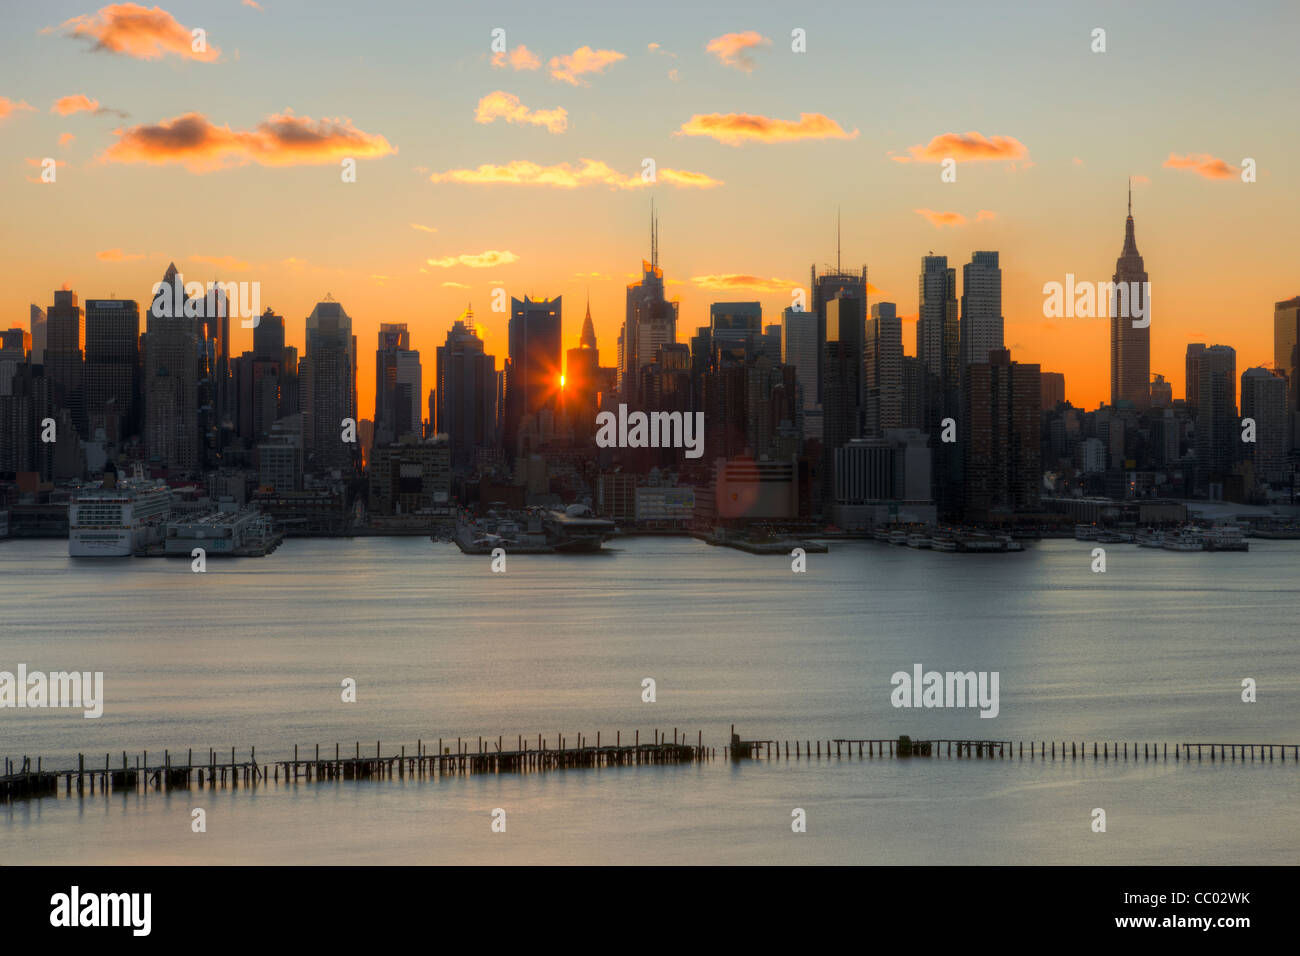 The rising sun shines through the buildings of the mid-town Manhattan skyline at sunrise as viewed New Jersey. - Stock Image